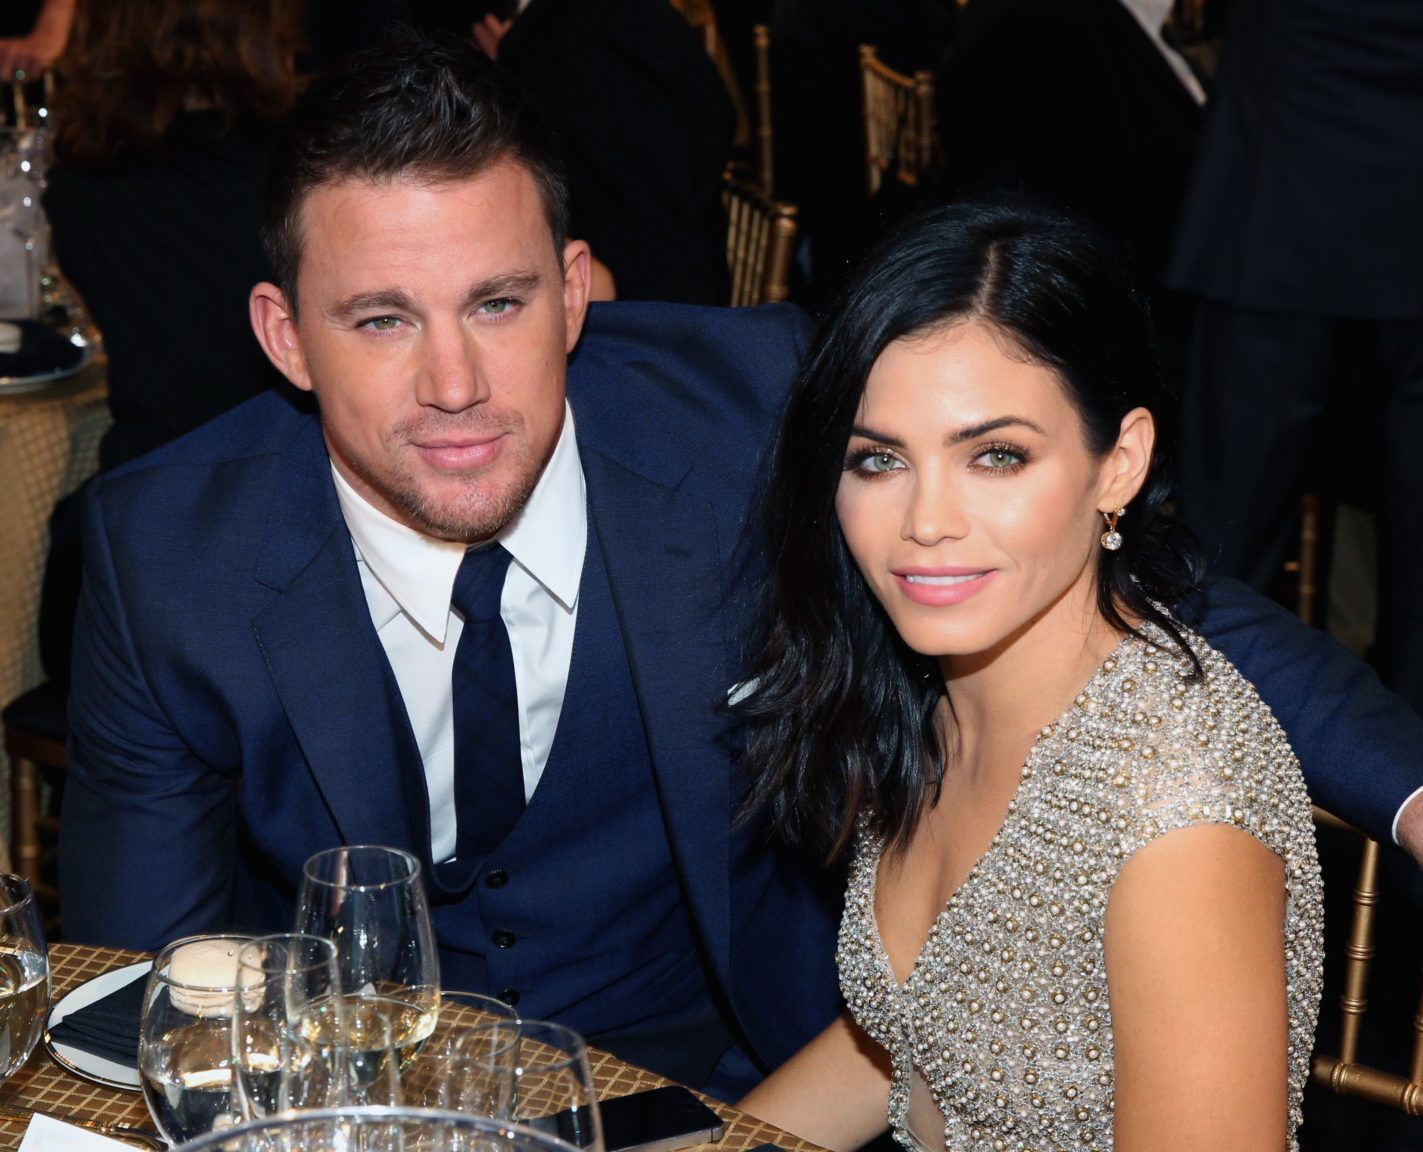 Channing Tatum And Jenna Dewan Officially Divorced